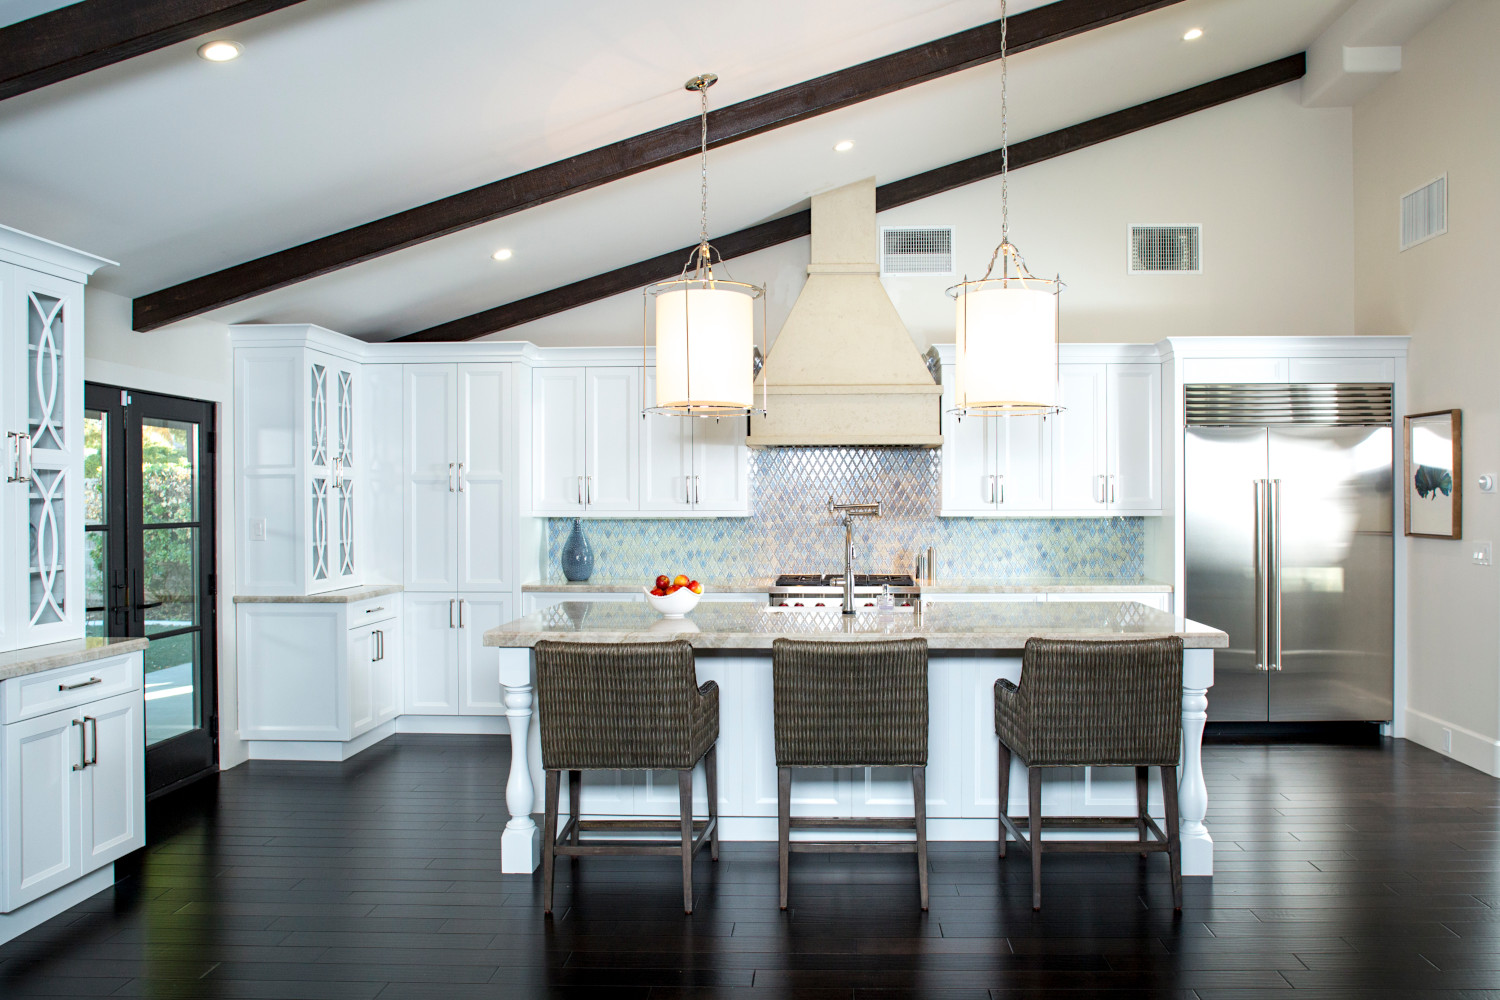 Santa Barbara styled white kitchen, wood ceiling beams, large island with woven reed counter stools.